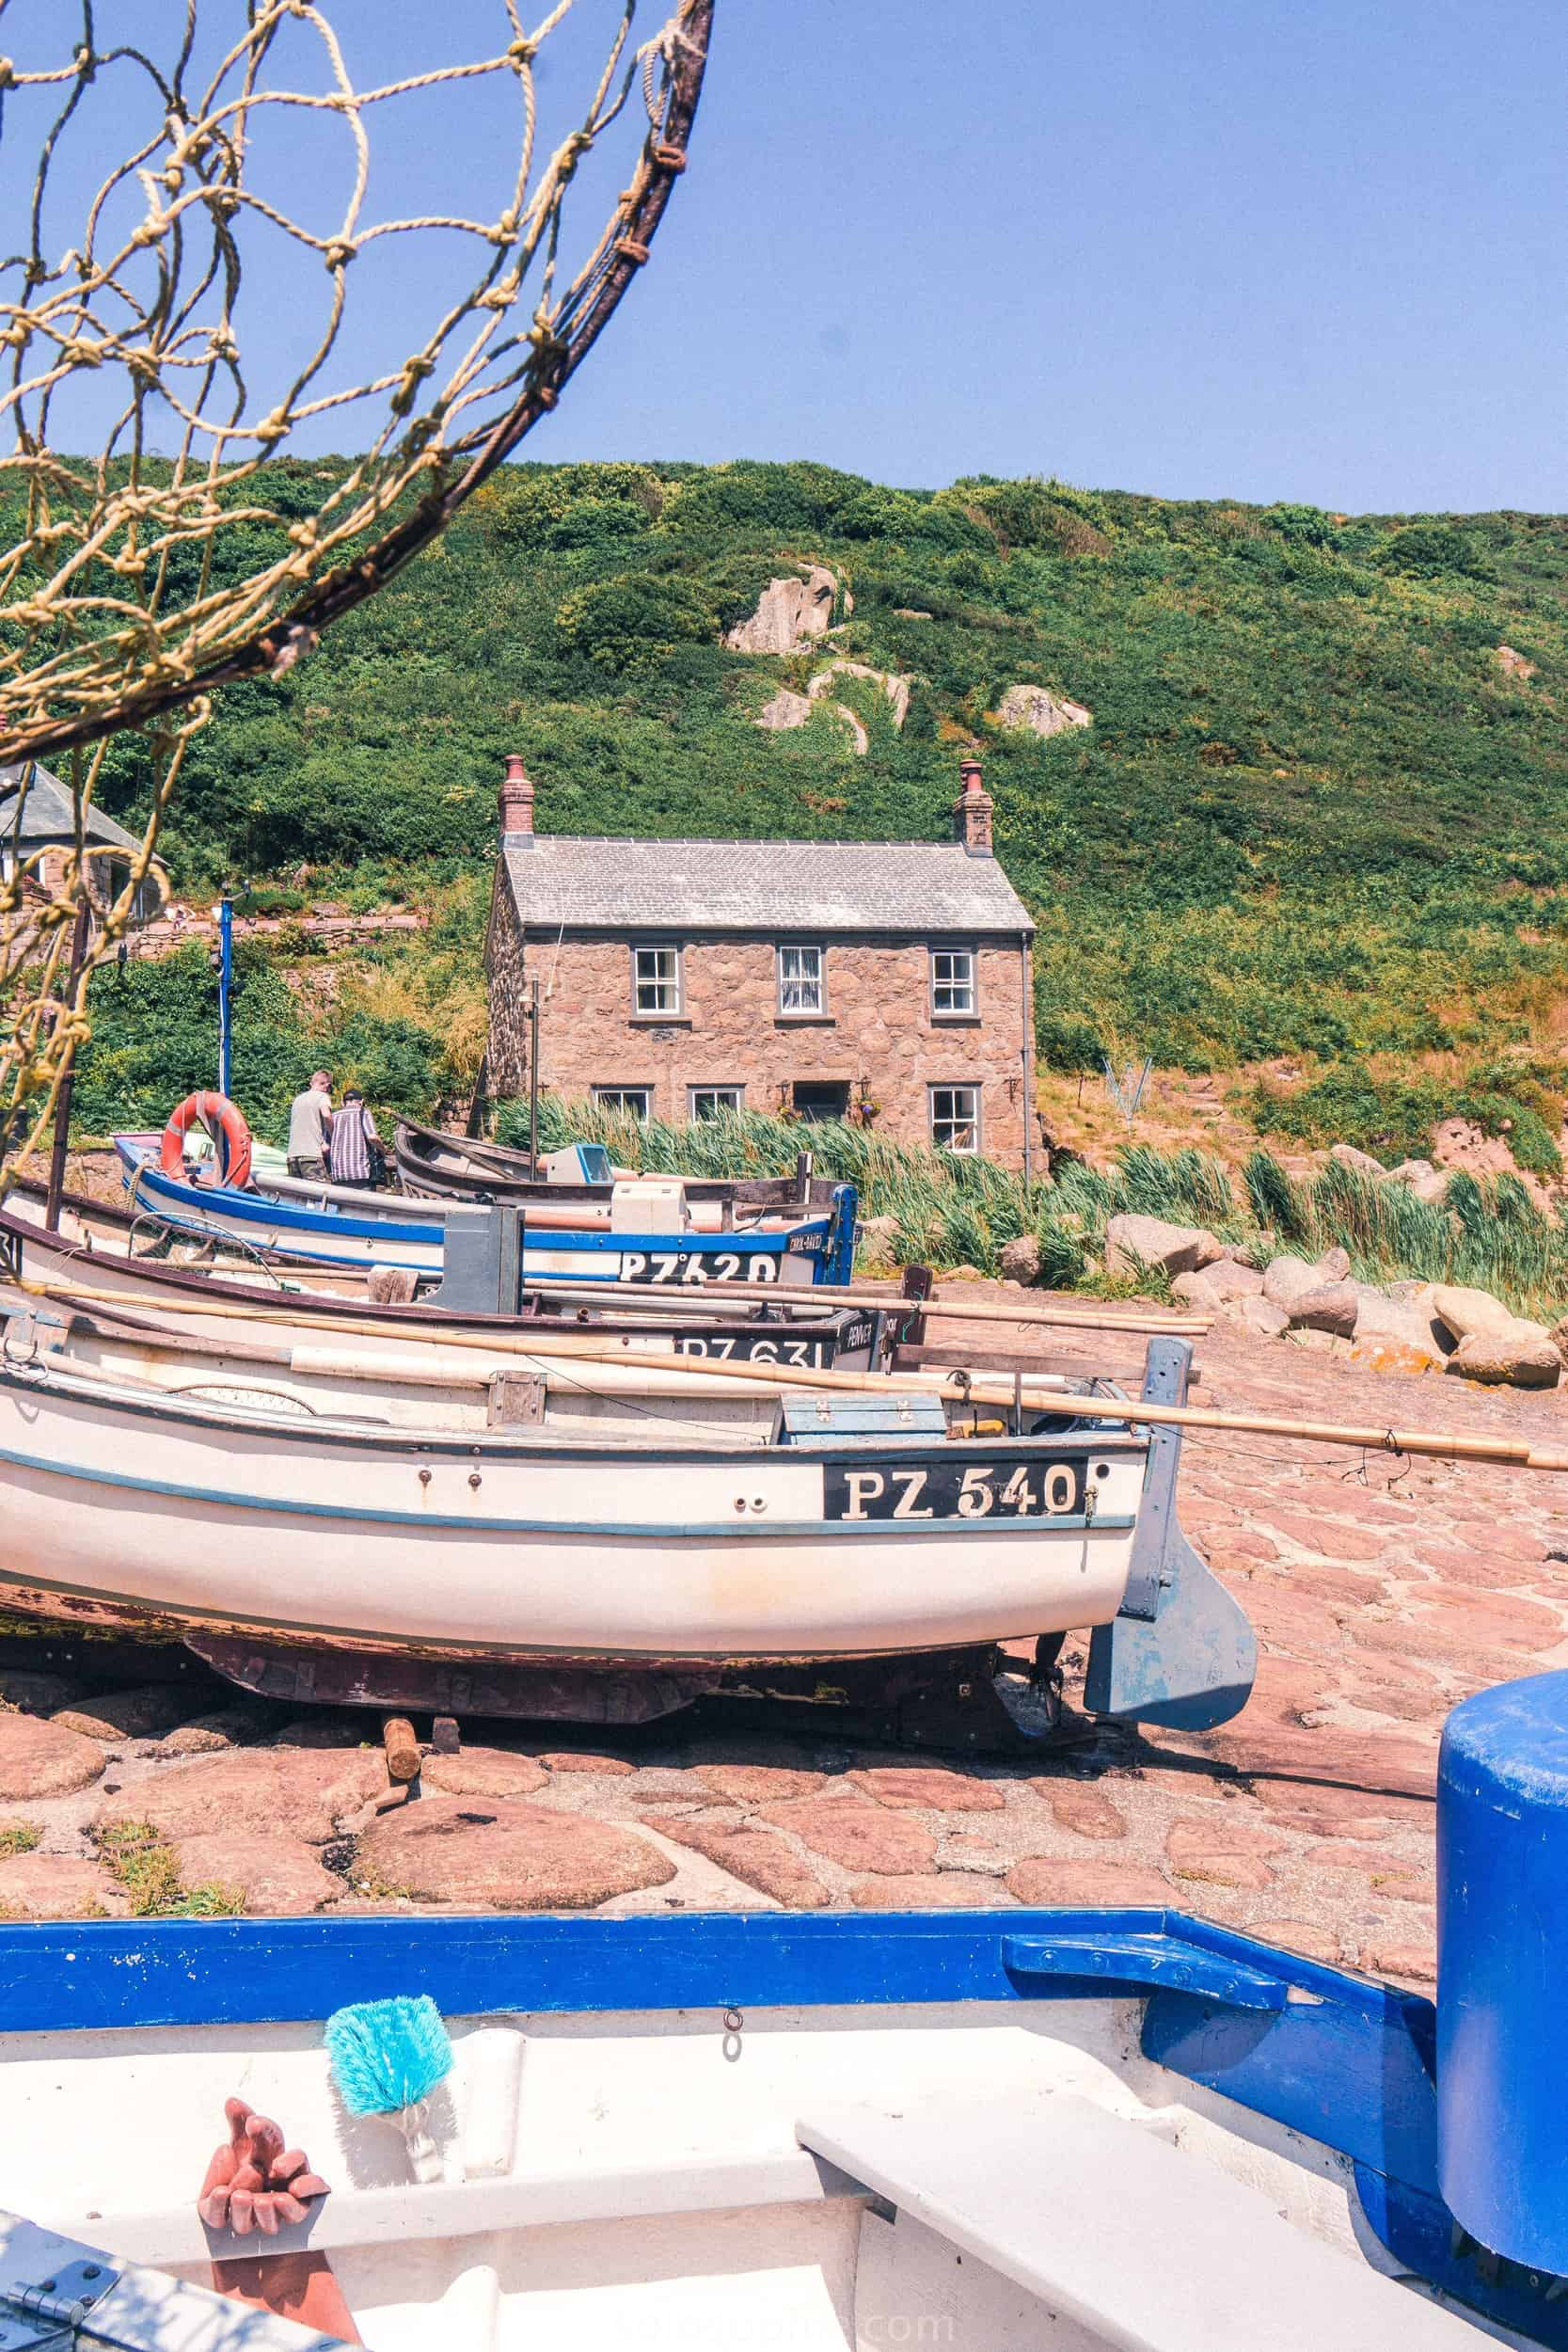 Penberth: A Taste of the Real, Authentic, and Historic Cornwall; one of the last surviving traditional fishing coves in Southern Cornwall, England